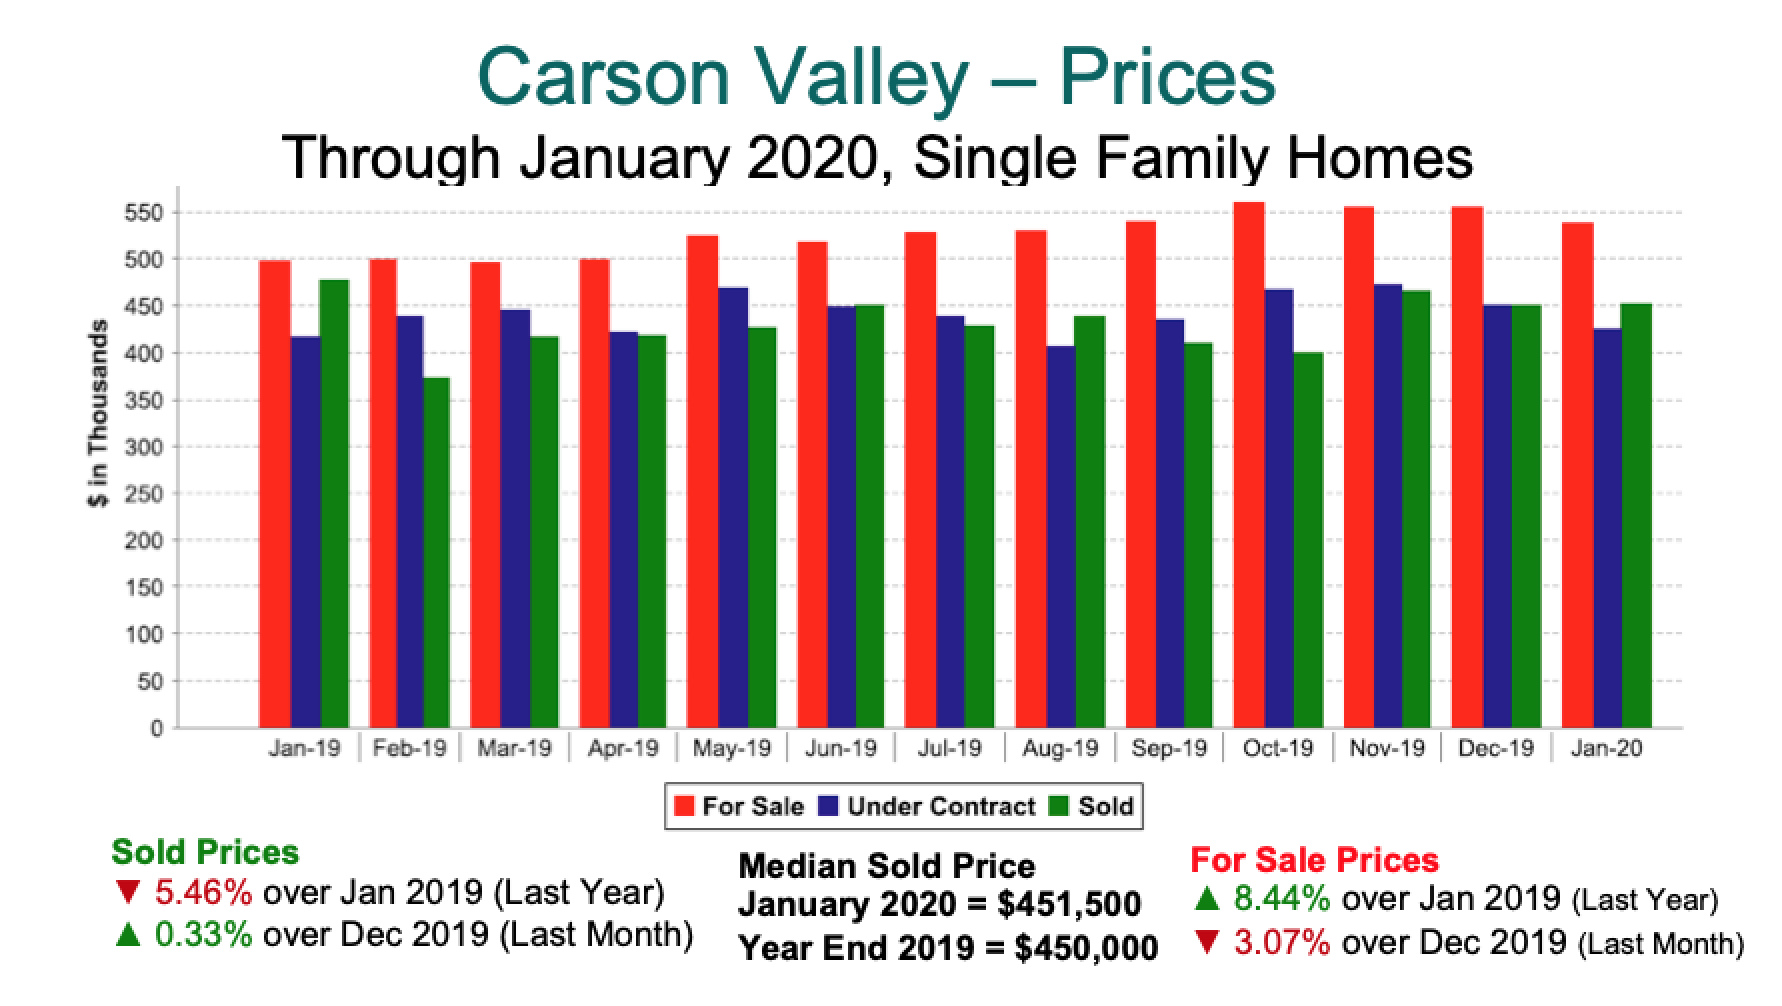 Carson Valley Single Family Home Prices 2019 - Jan 2020